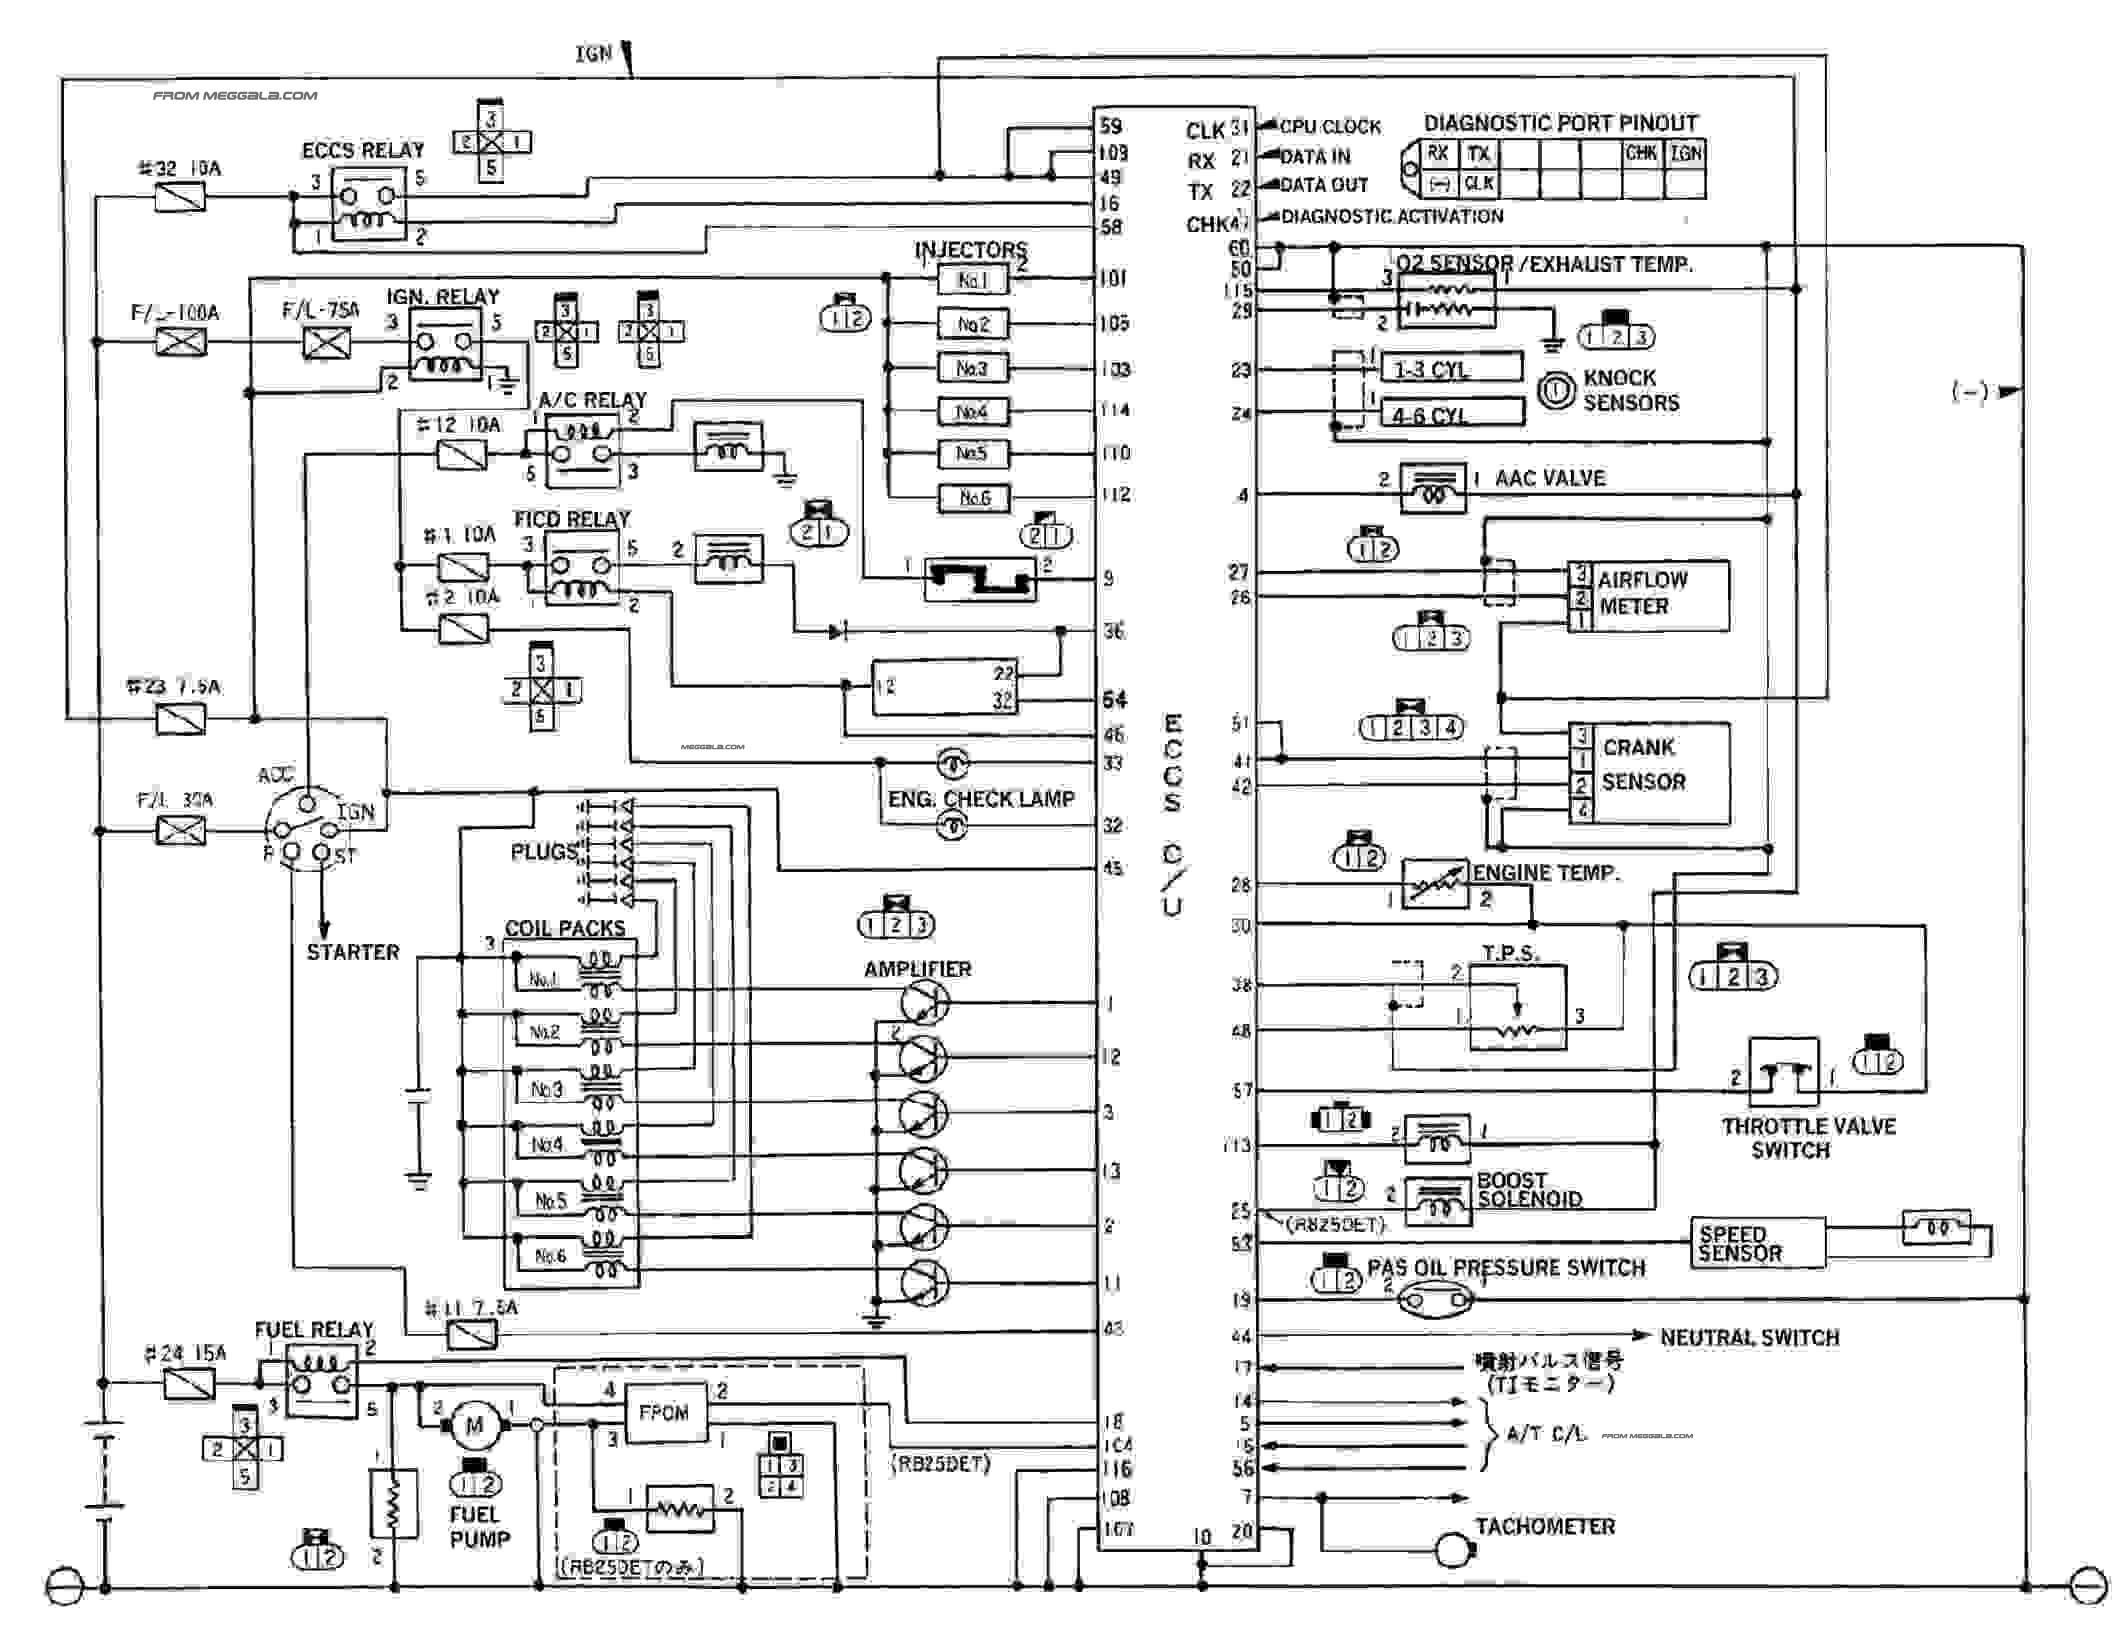 Rb20det Engine Diagram Engine Diagram Get Free Image About Wiring Along with Rb20det Wiring Of Rb20det Engine Diagram